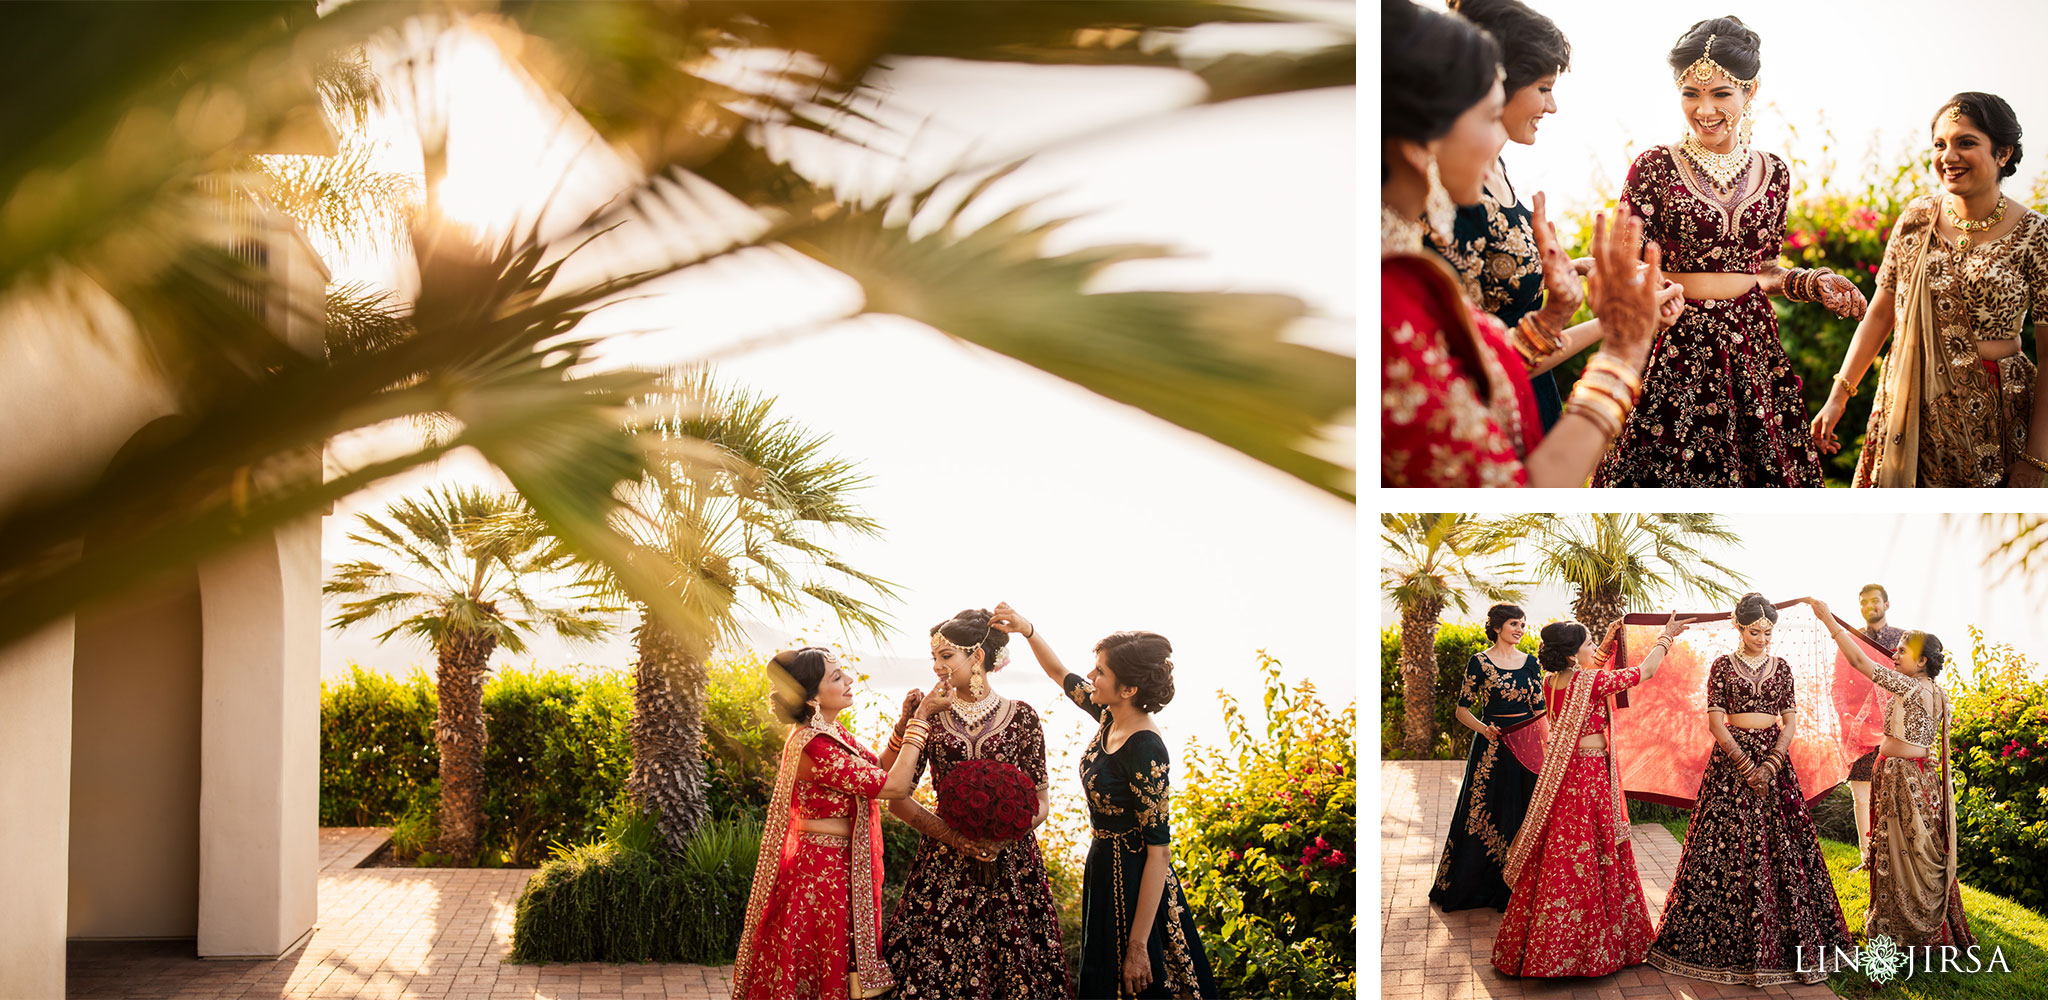 005 terranea resort rancho palos verdes indian bride wedding photography